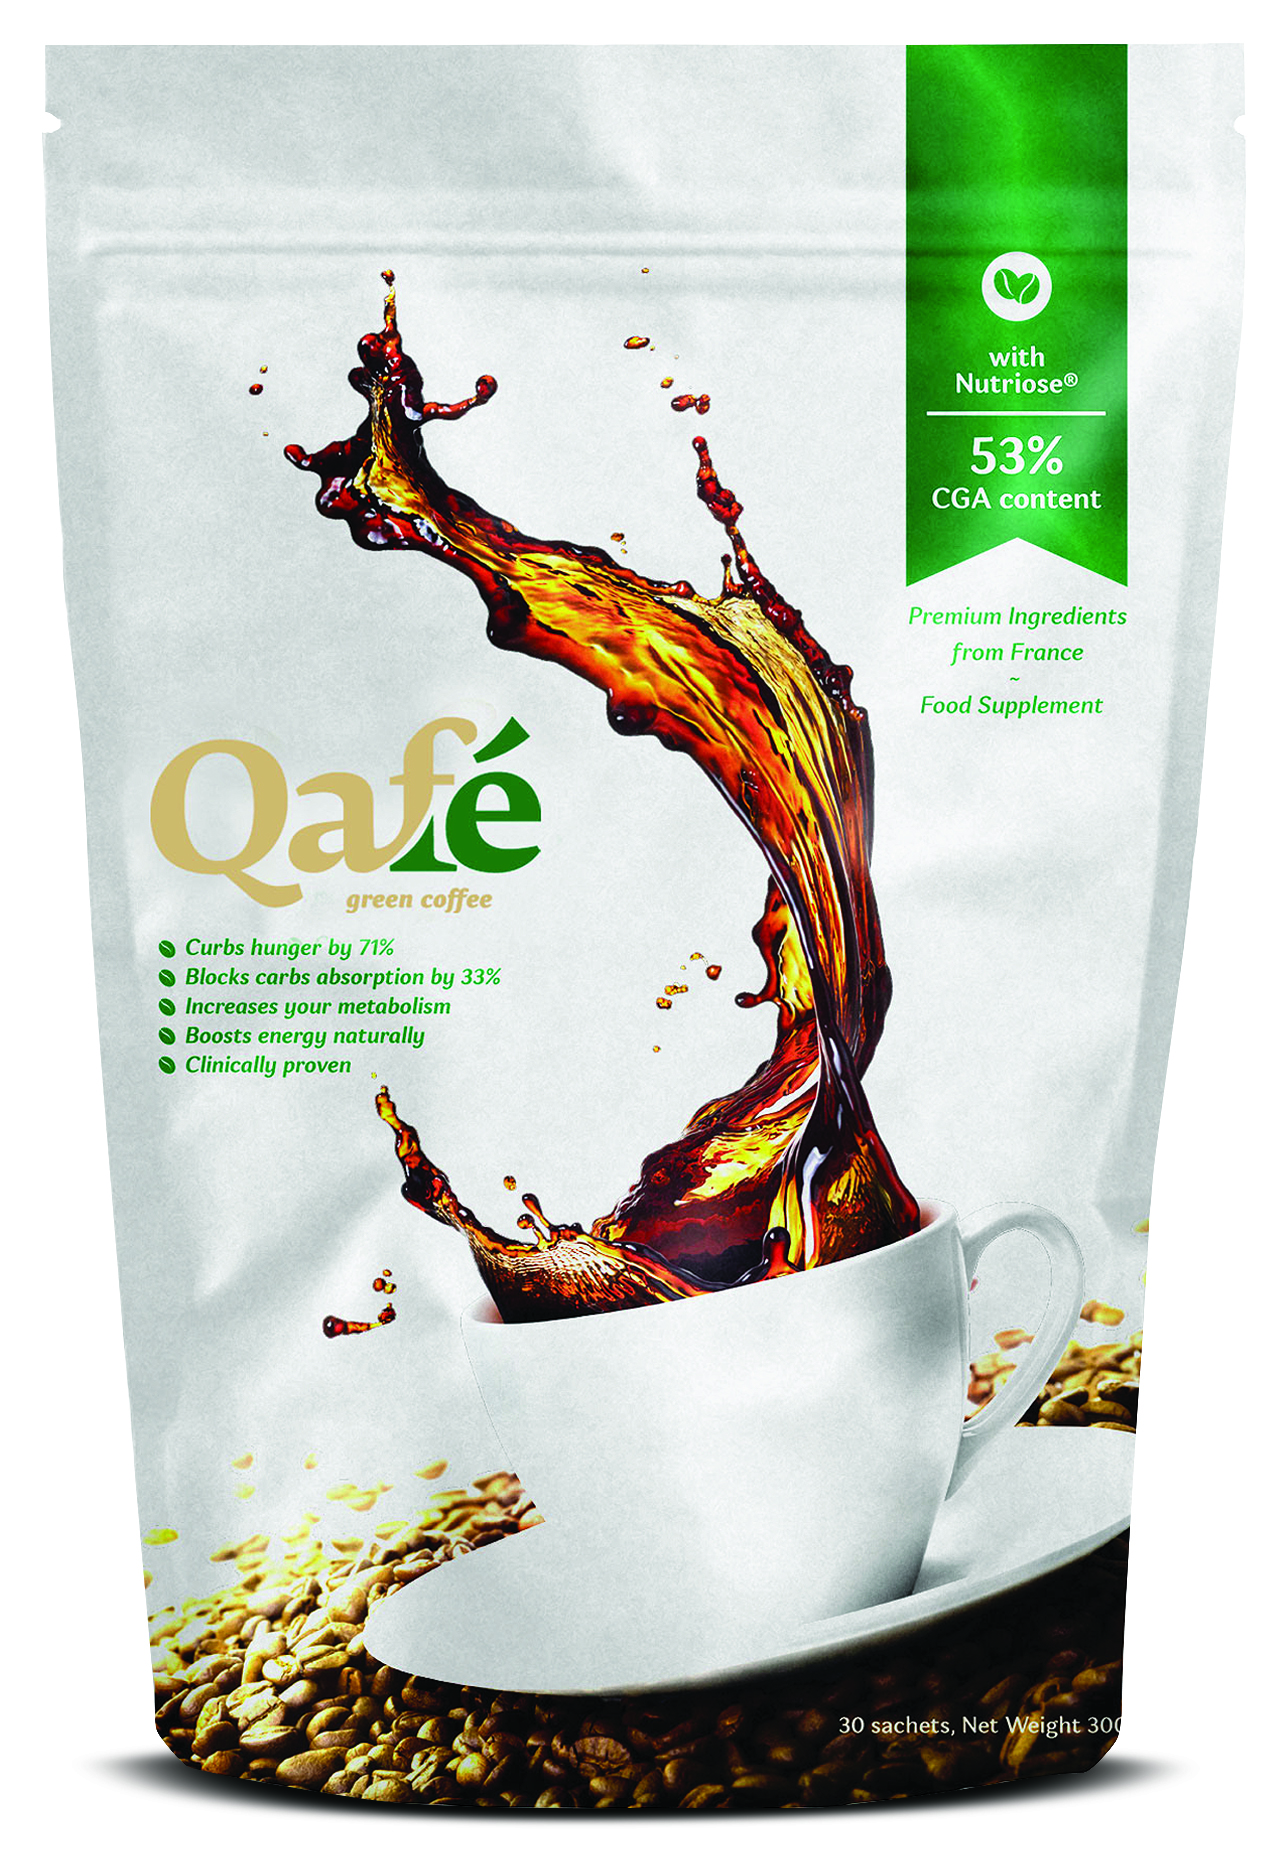 Lose Weight Faster With Qnet S New Qafe Green Coffee Qnet Global